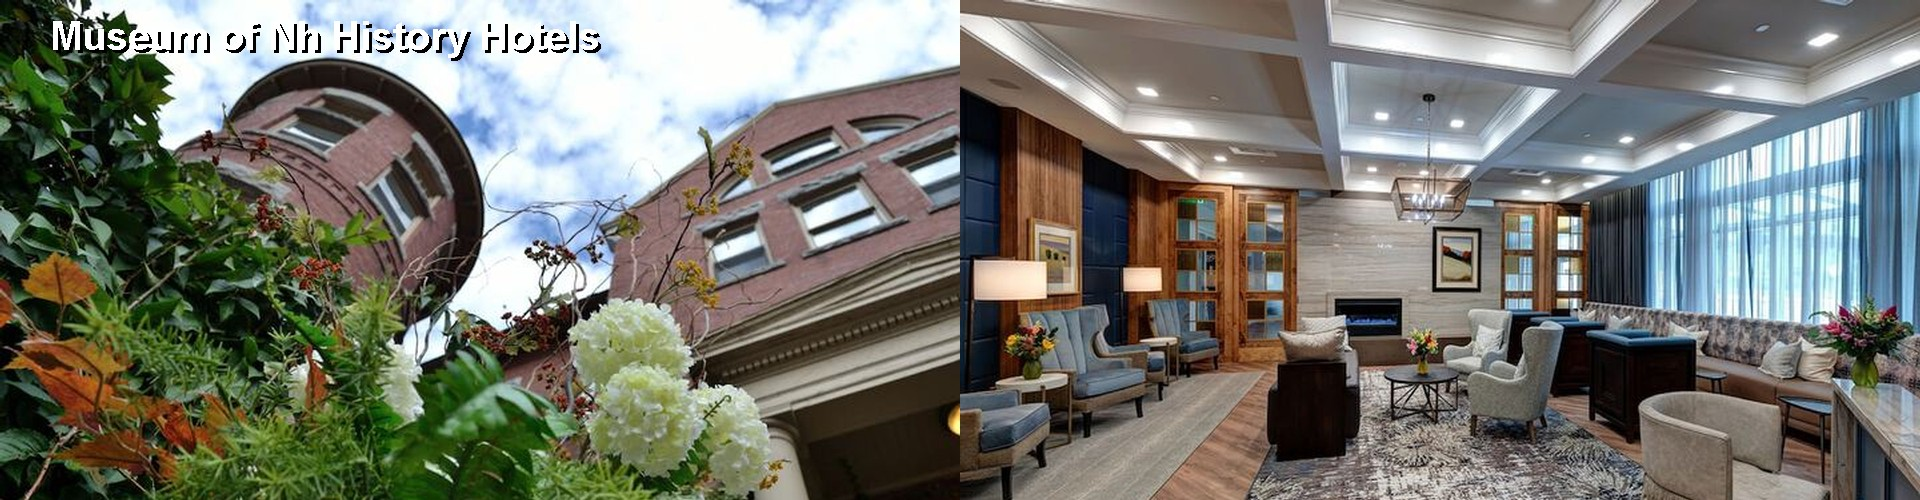 5 Best Hotels near Museum of Nh History